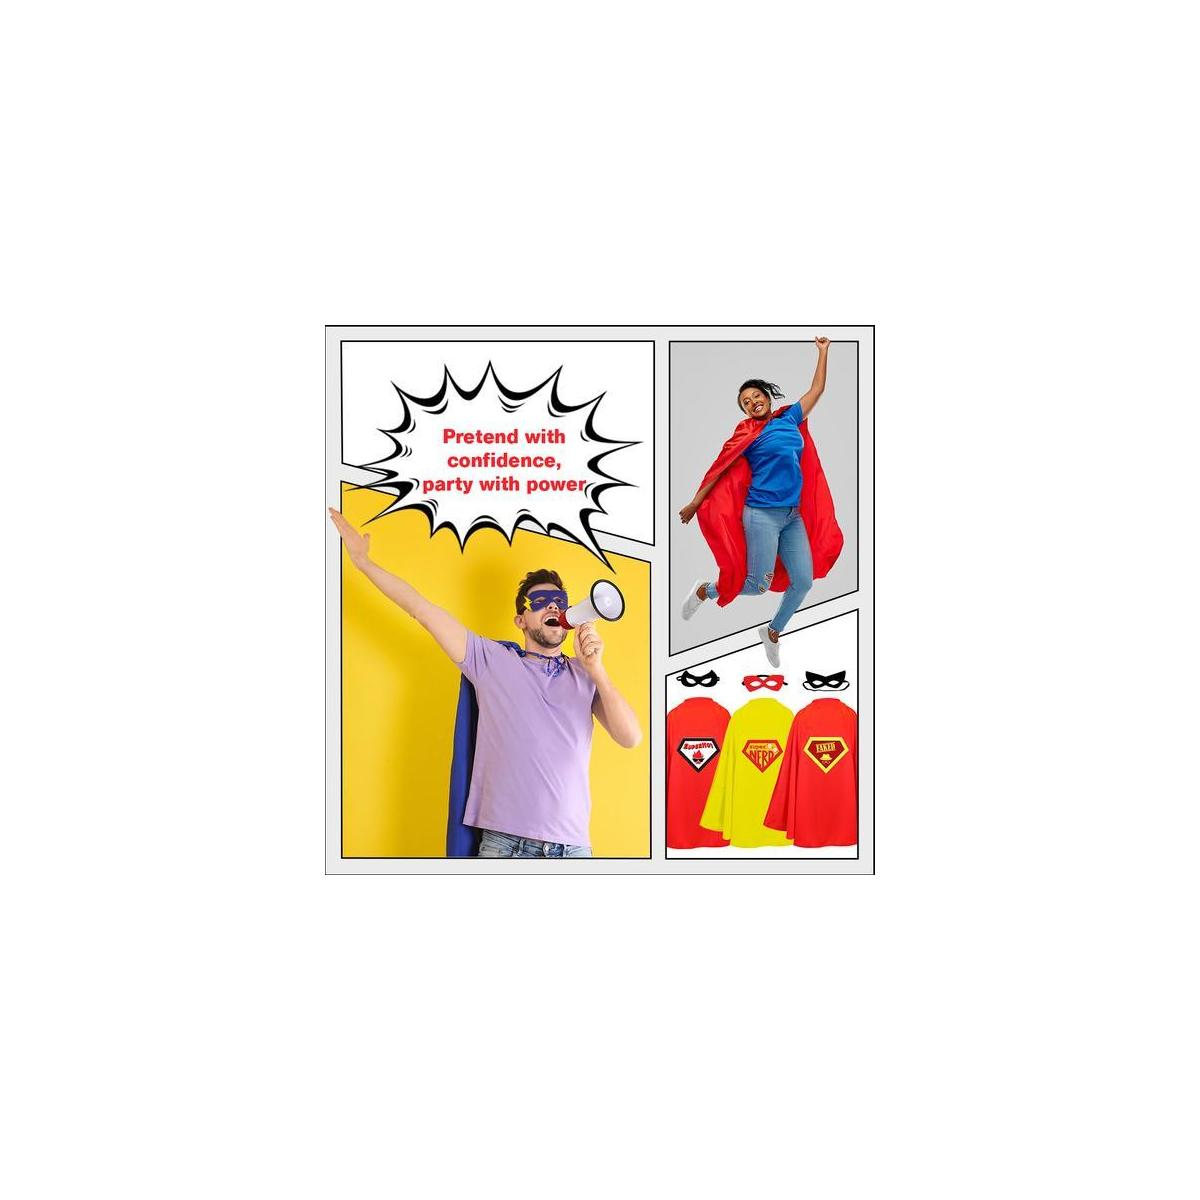 STOIE'S Adult Superhero Capes and Masks, 8-Piece Set - Dress-Up Kit for Parties, Halloween and Themed Events - Versatile Group Costume, Comfortable Design Materials